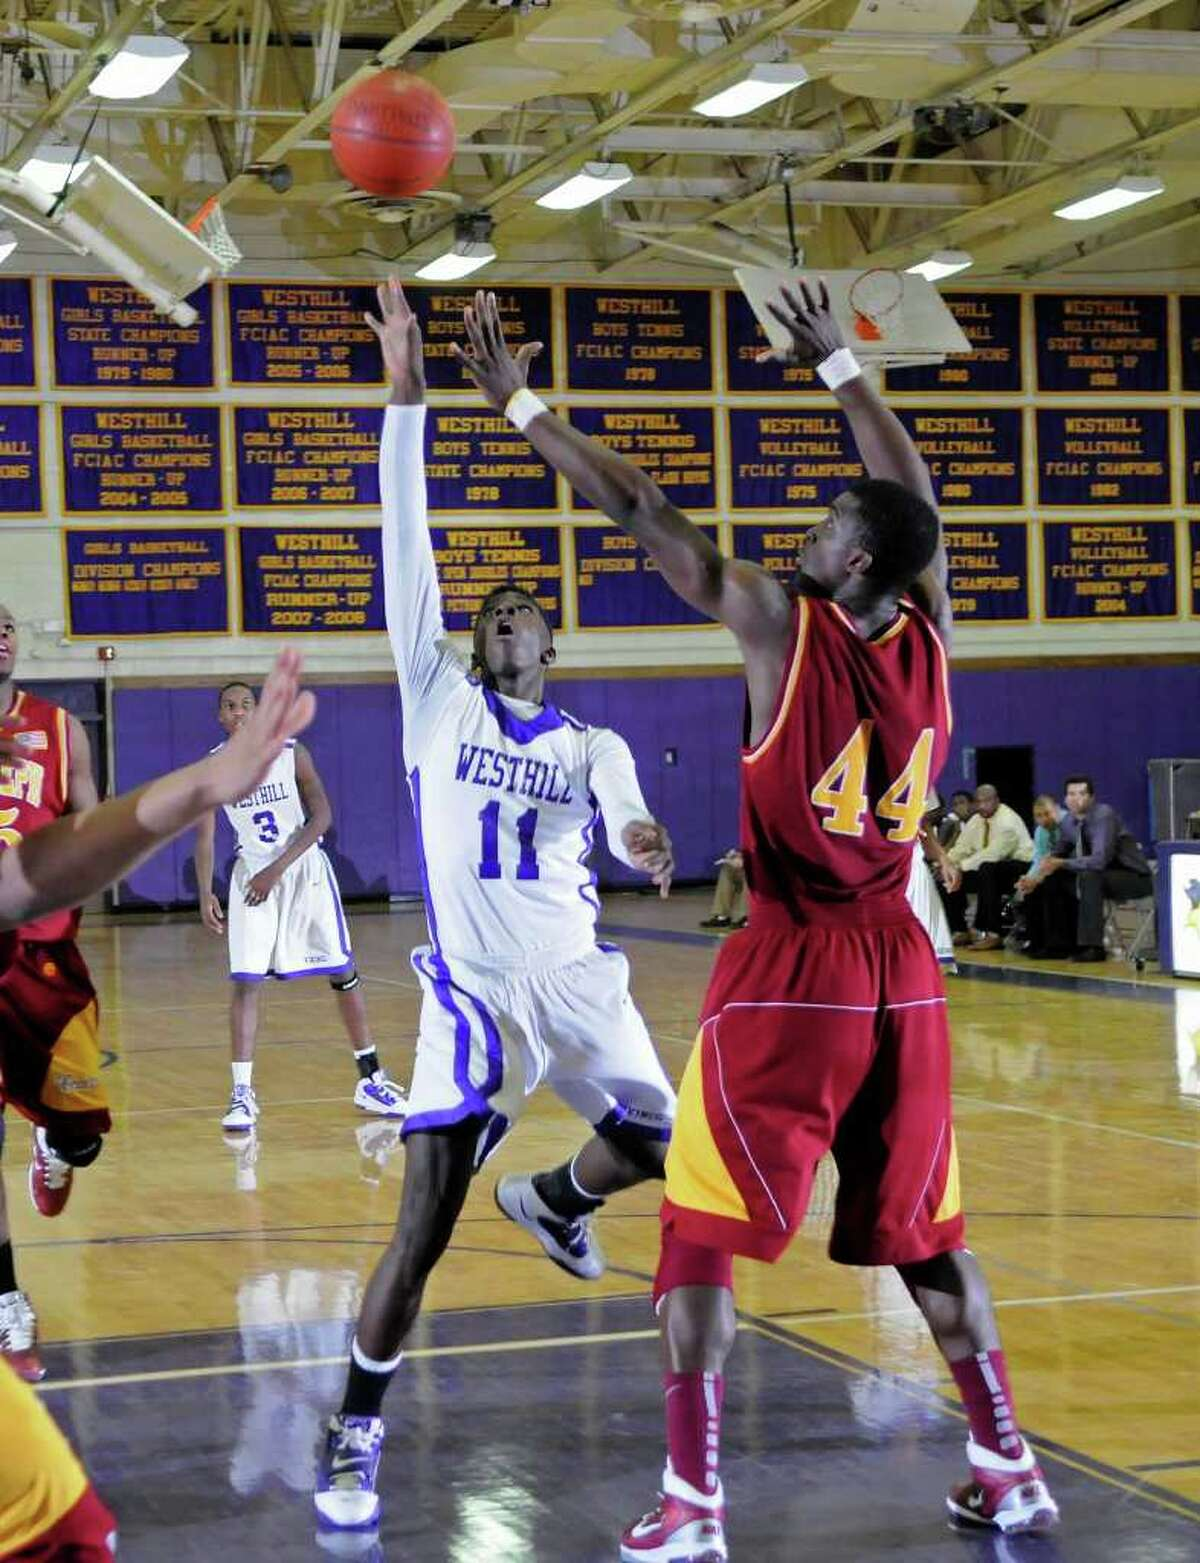 Westhill's #11 Antwaun Boyd takes a shot as St. Joe's #44 Oscar Assie steps in as Westhill High School hosts St. Joseph High School in boys basketball in Stamford, CT on Friday, February 4, 2011.